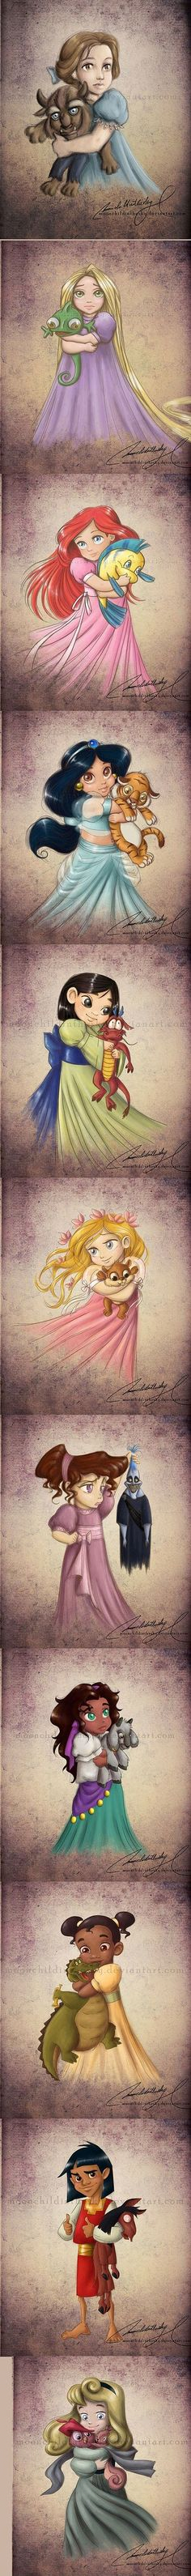 Little Disney Princesses and Their Pets